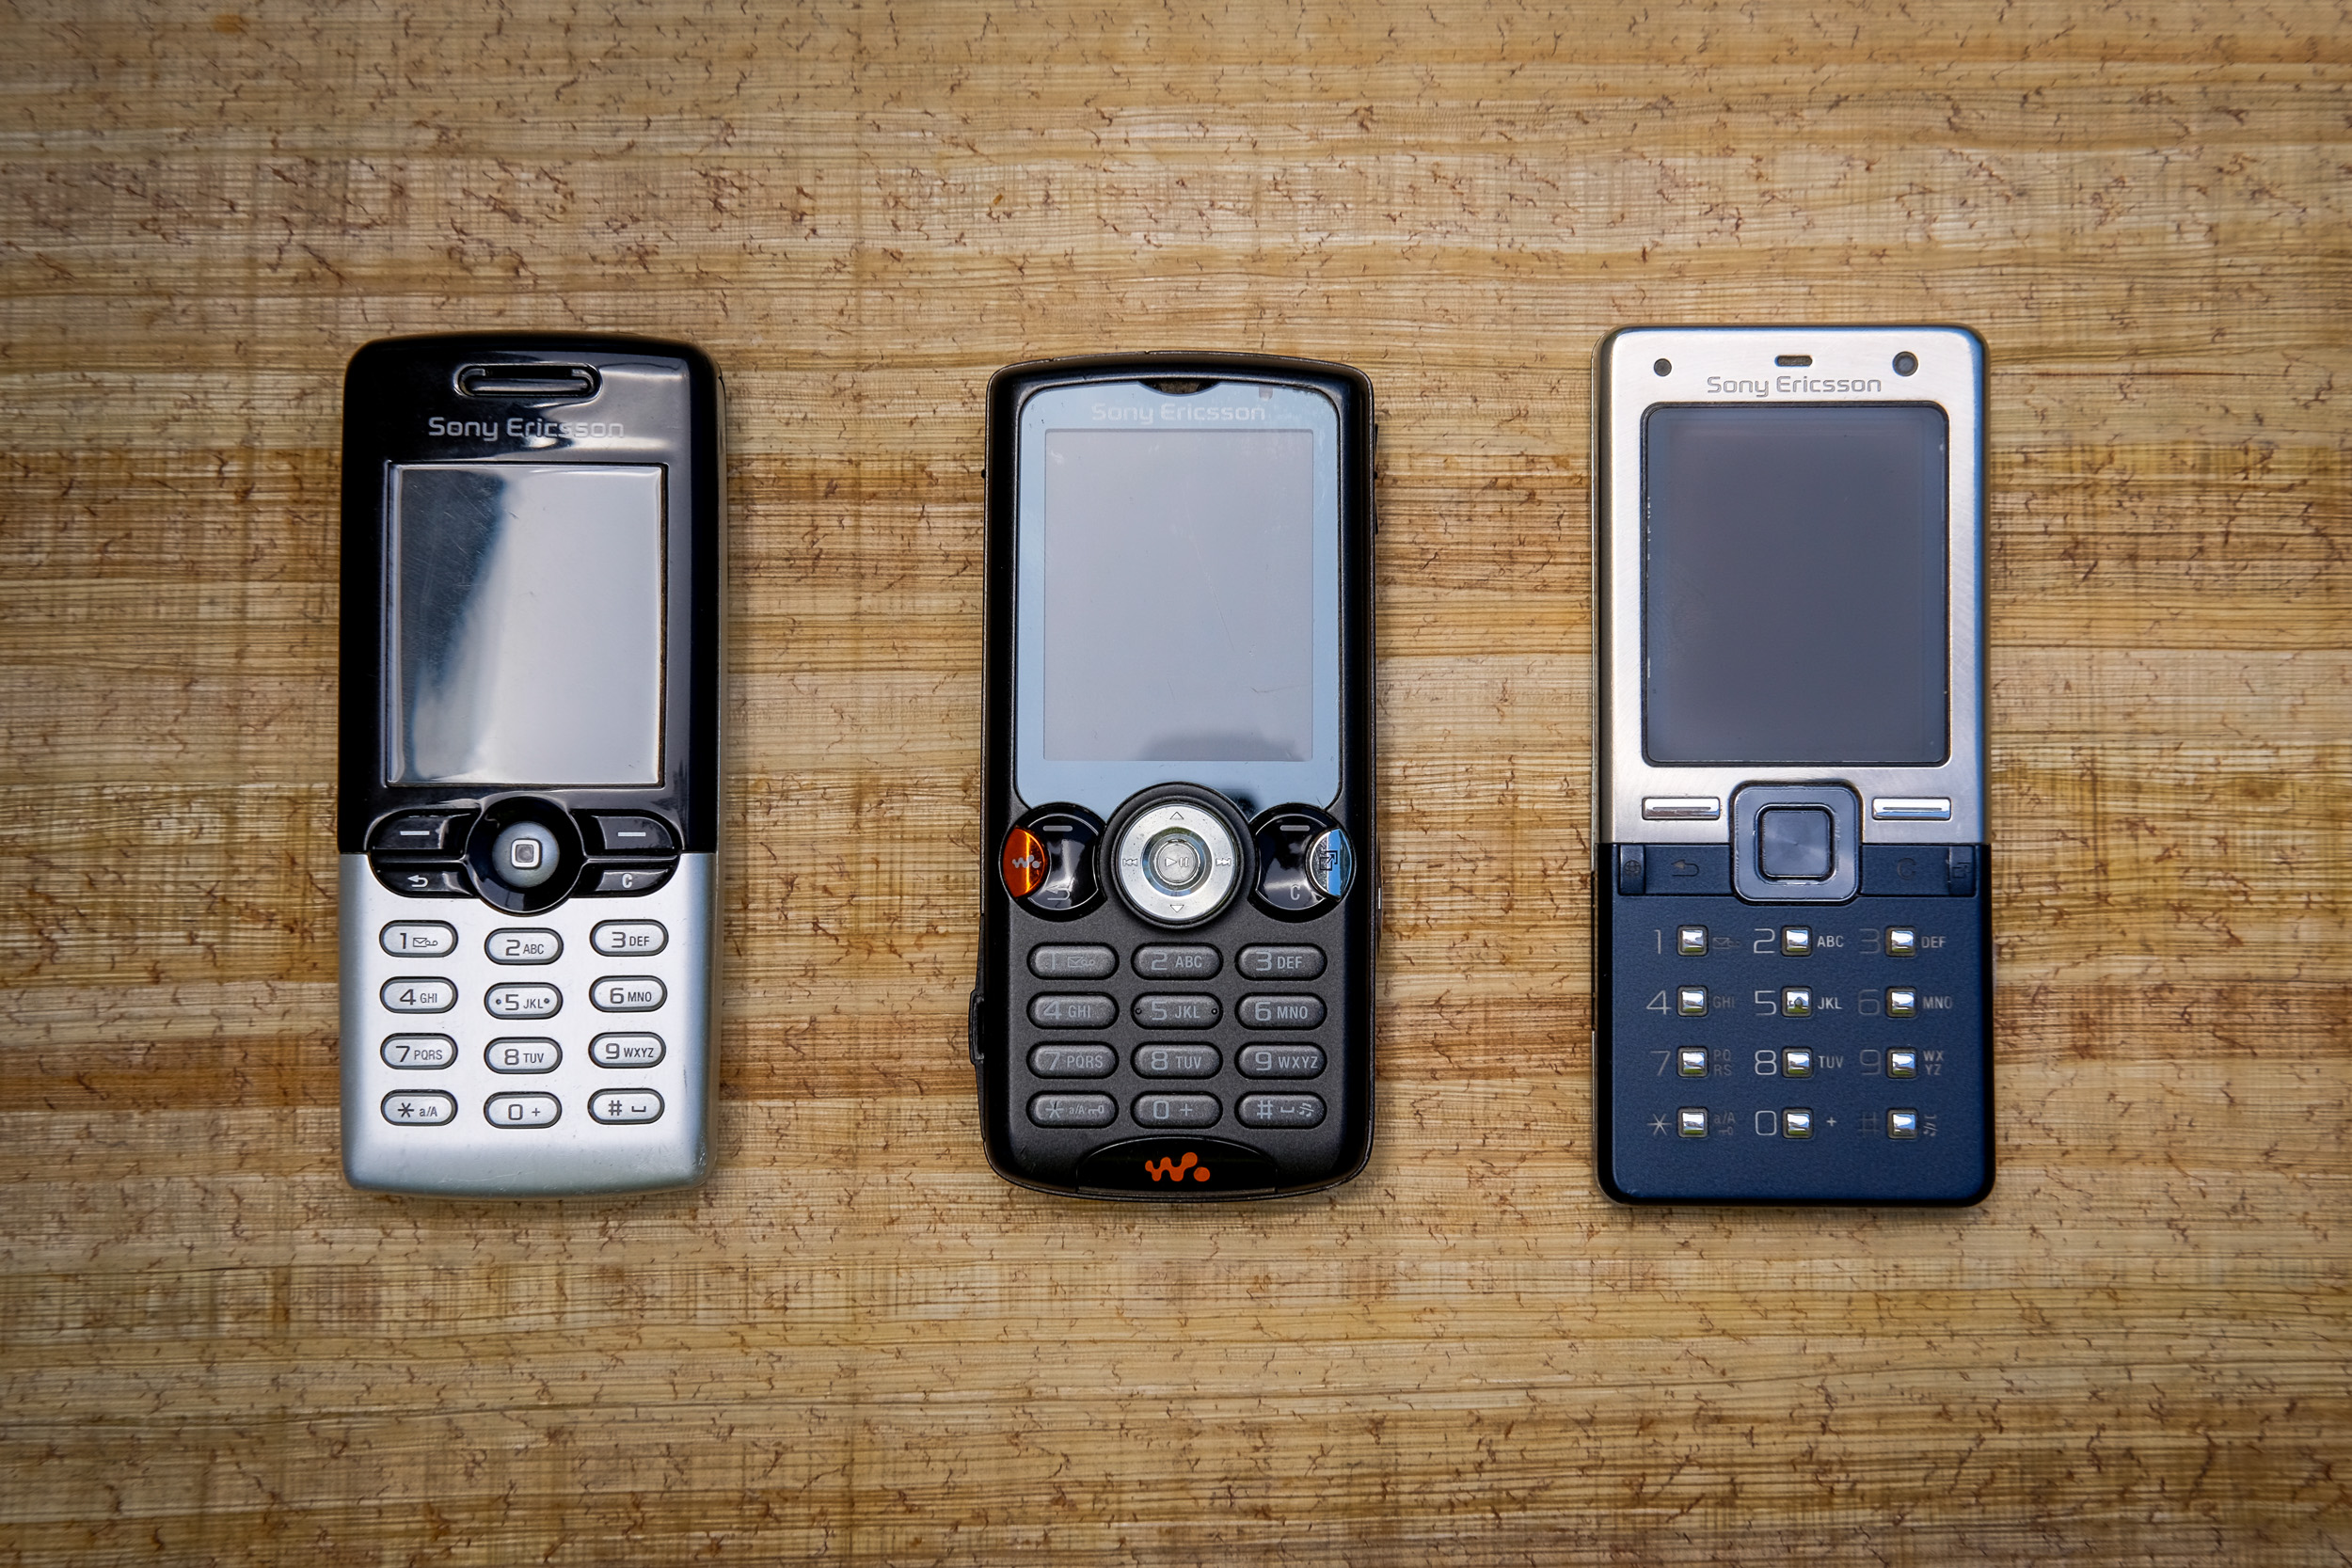 T610, W810, and T650i